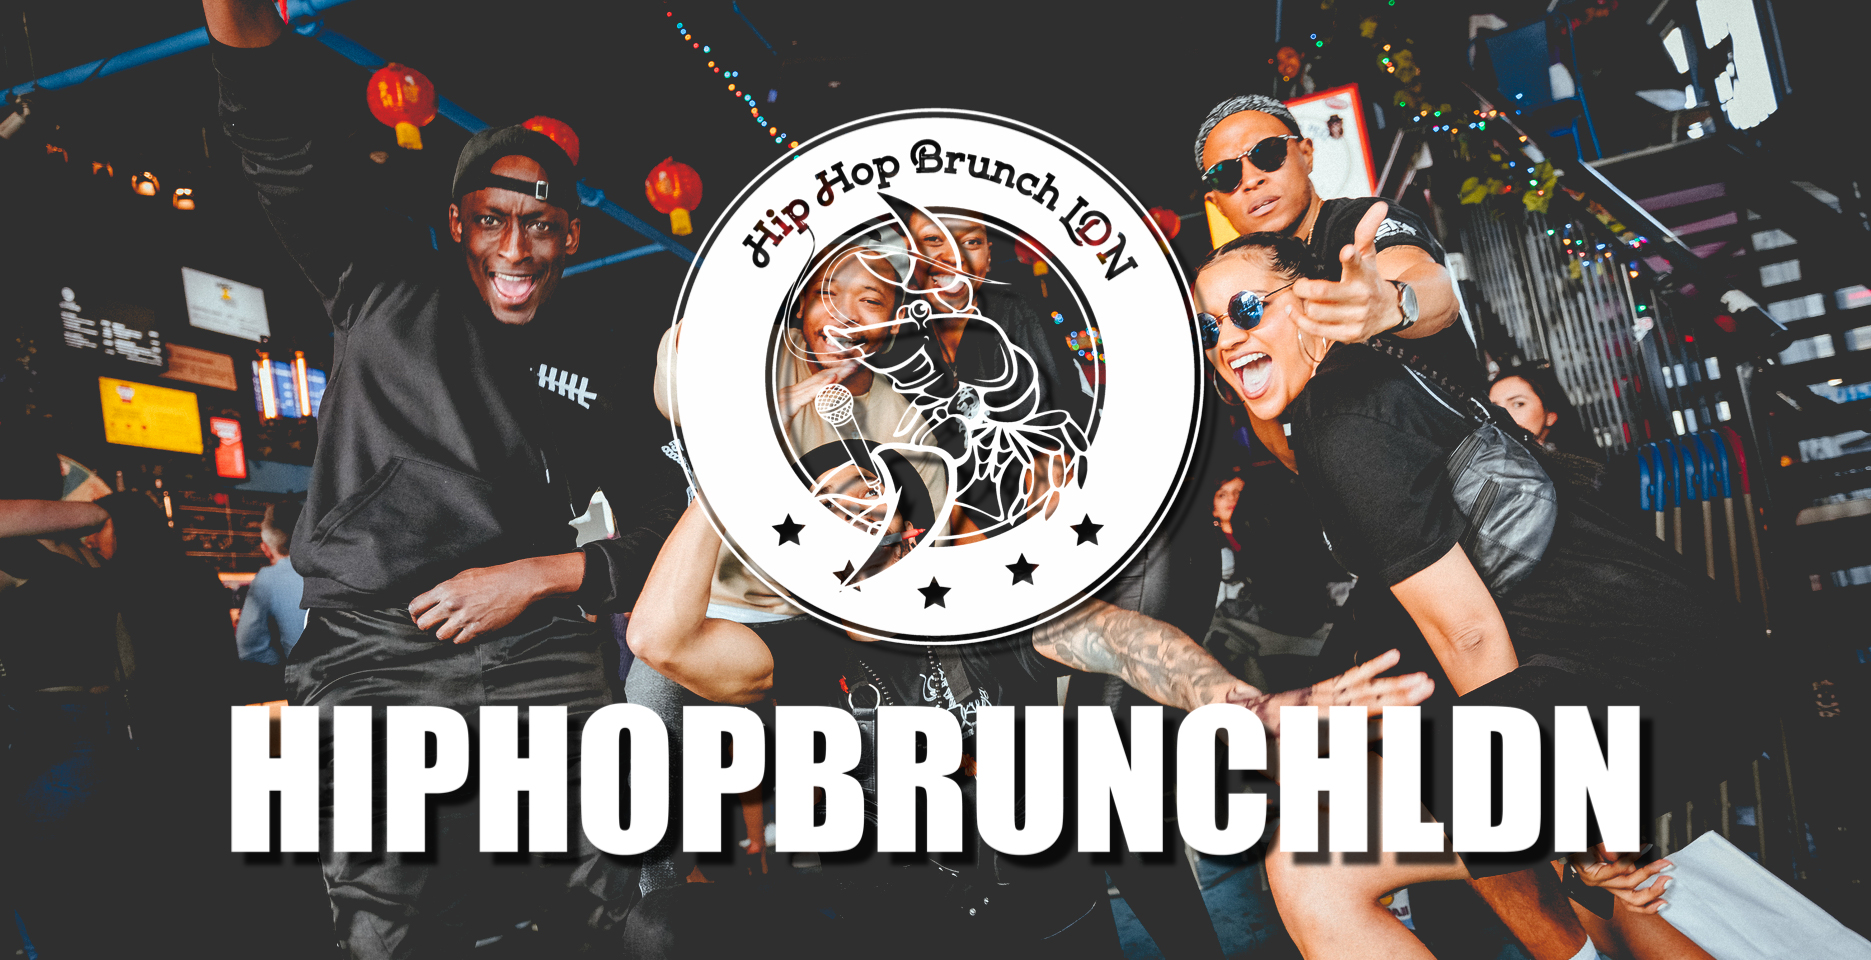 Hip Hop Brunch: February 20th